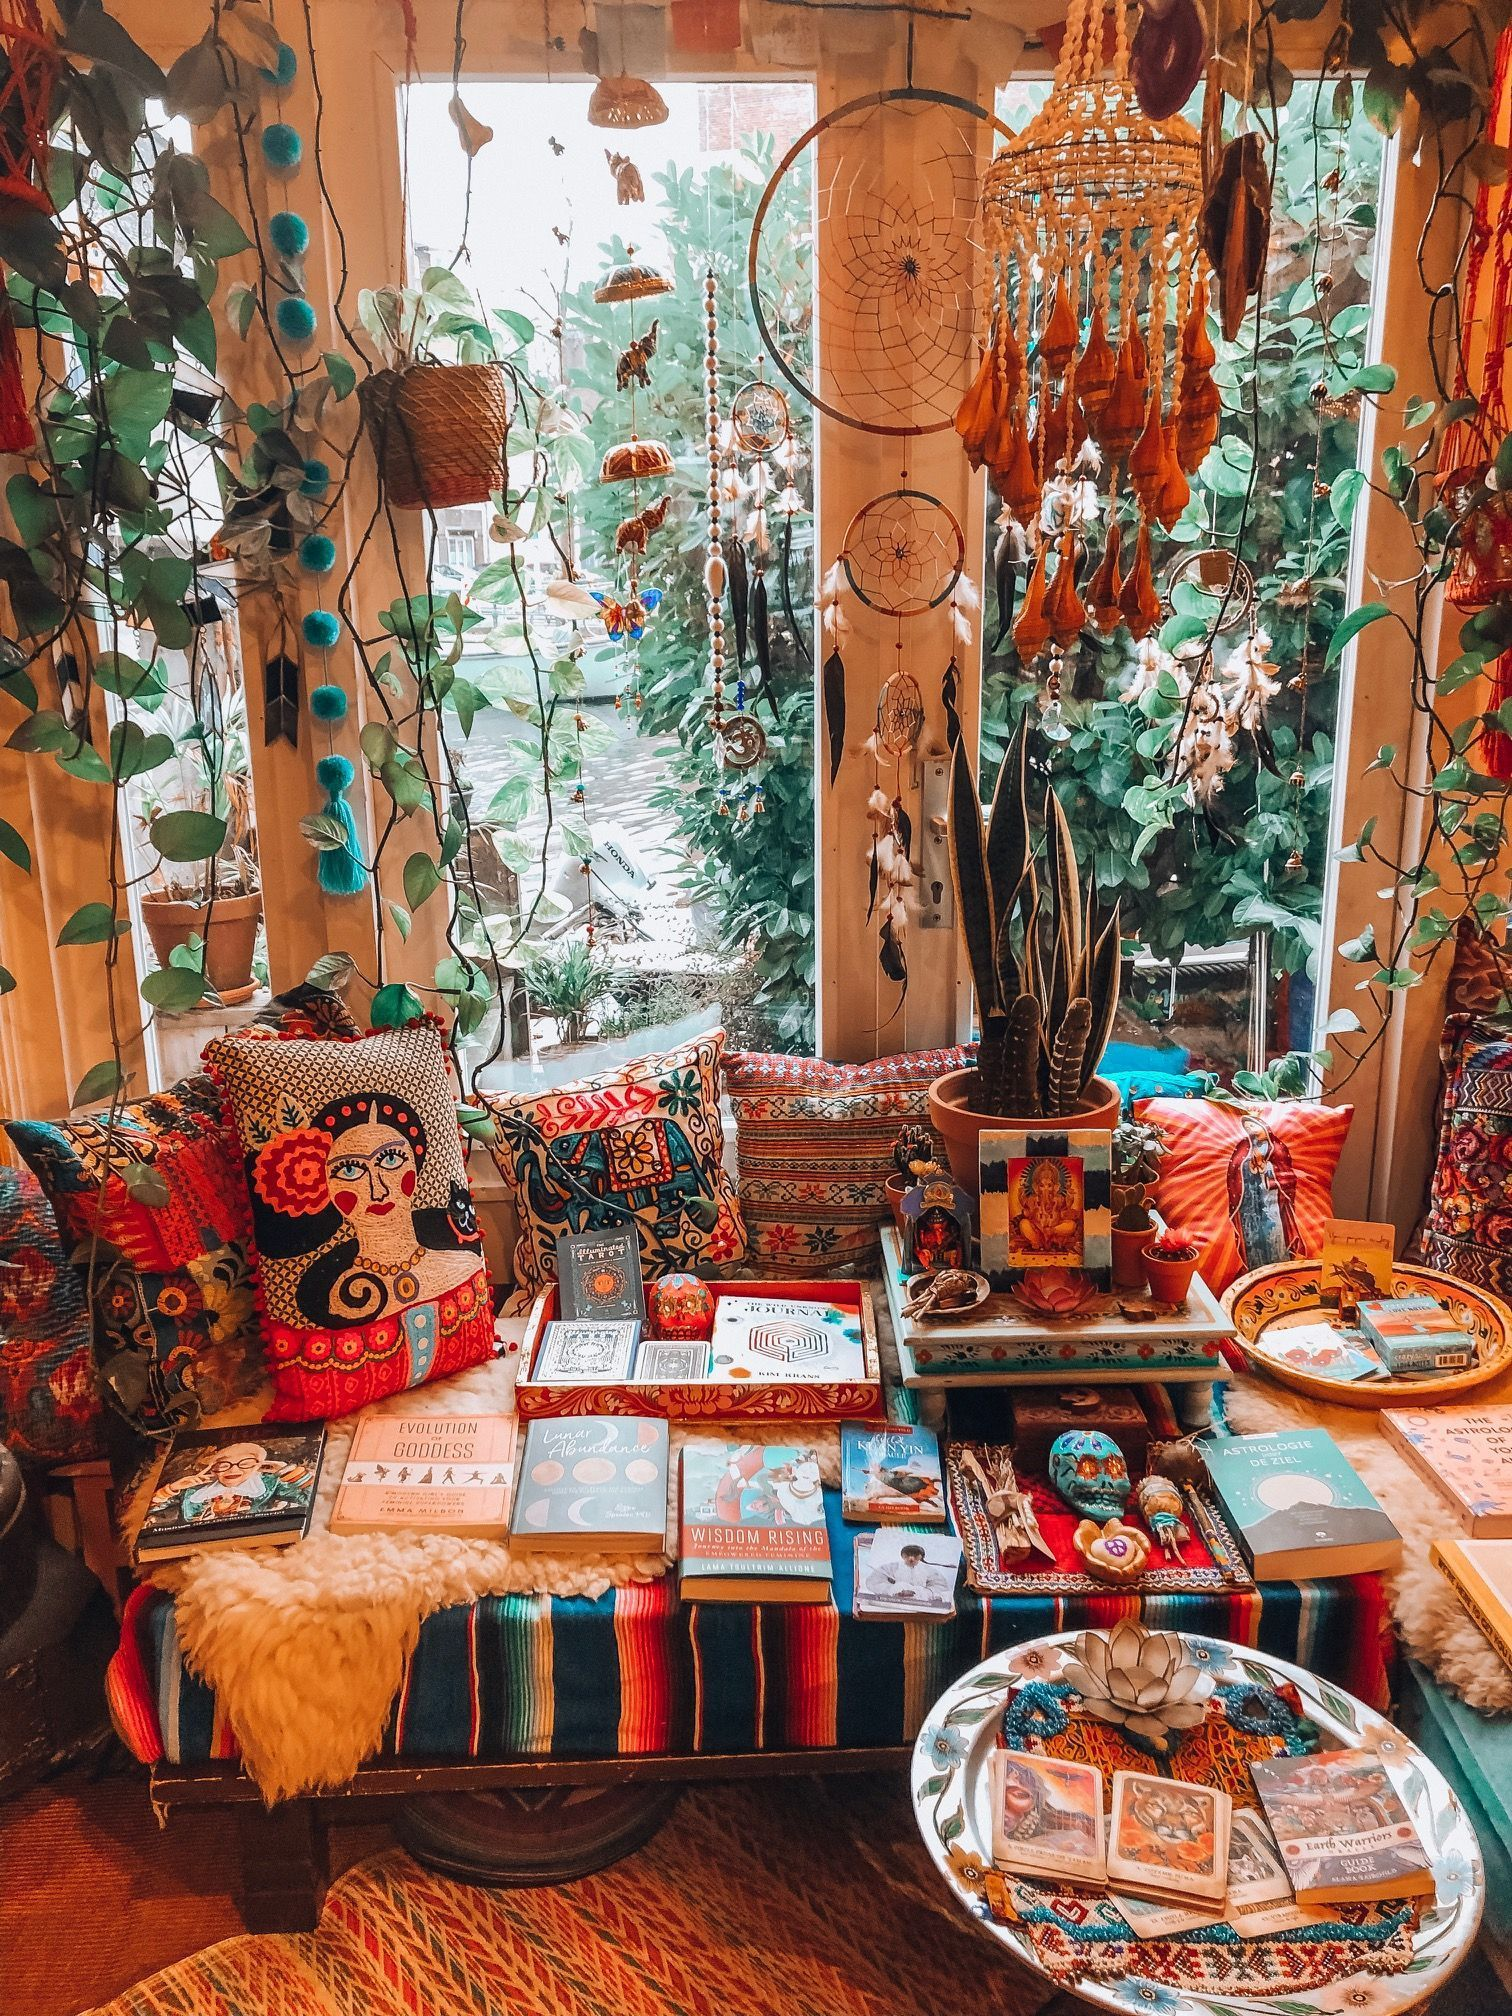 home accessories store Inspiration from the cutest bohemian abode ever Home decor at its best Home decor at its best Inspiration from the cutest hippie store ever Lets cr...